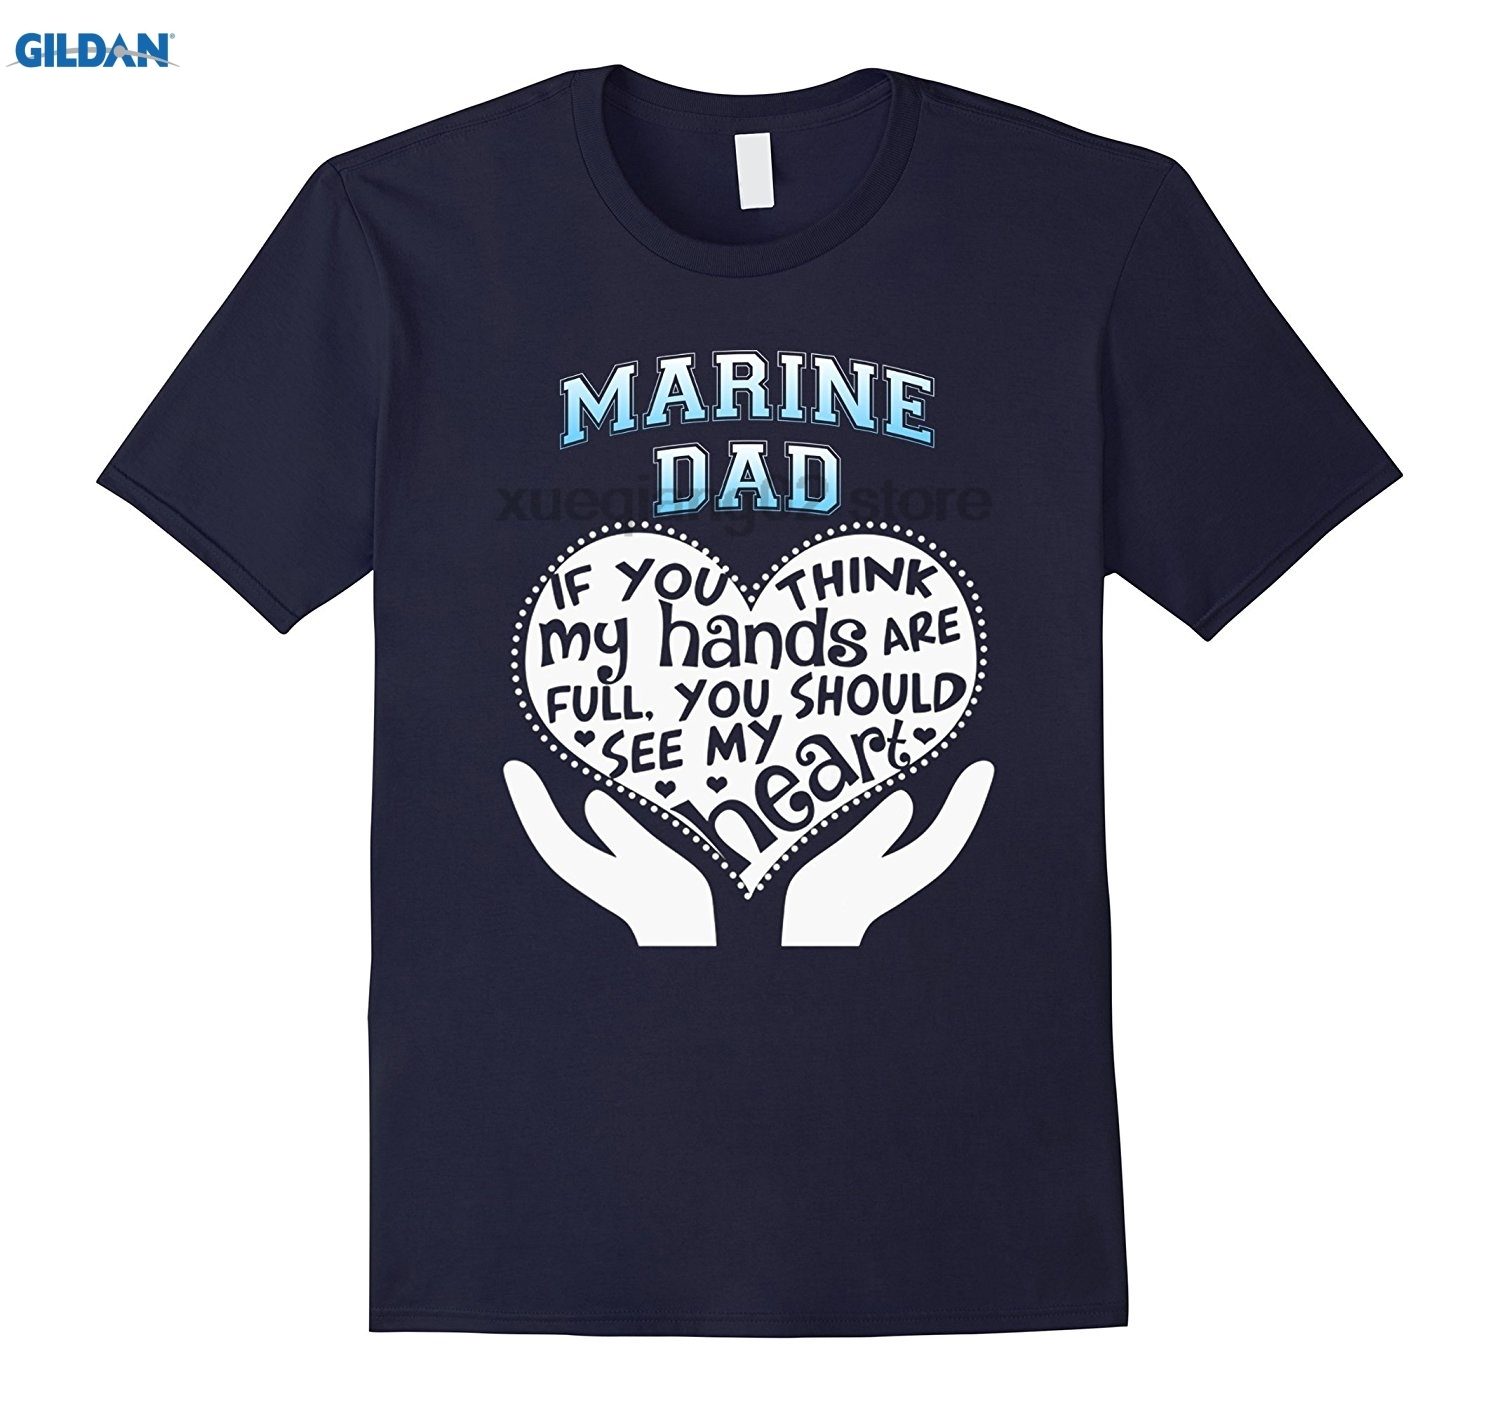 GILDAN Marine Dad Shirt, Fathers Day, Veterans Day, Full Heart